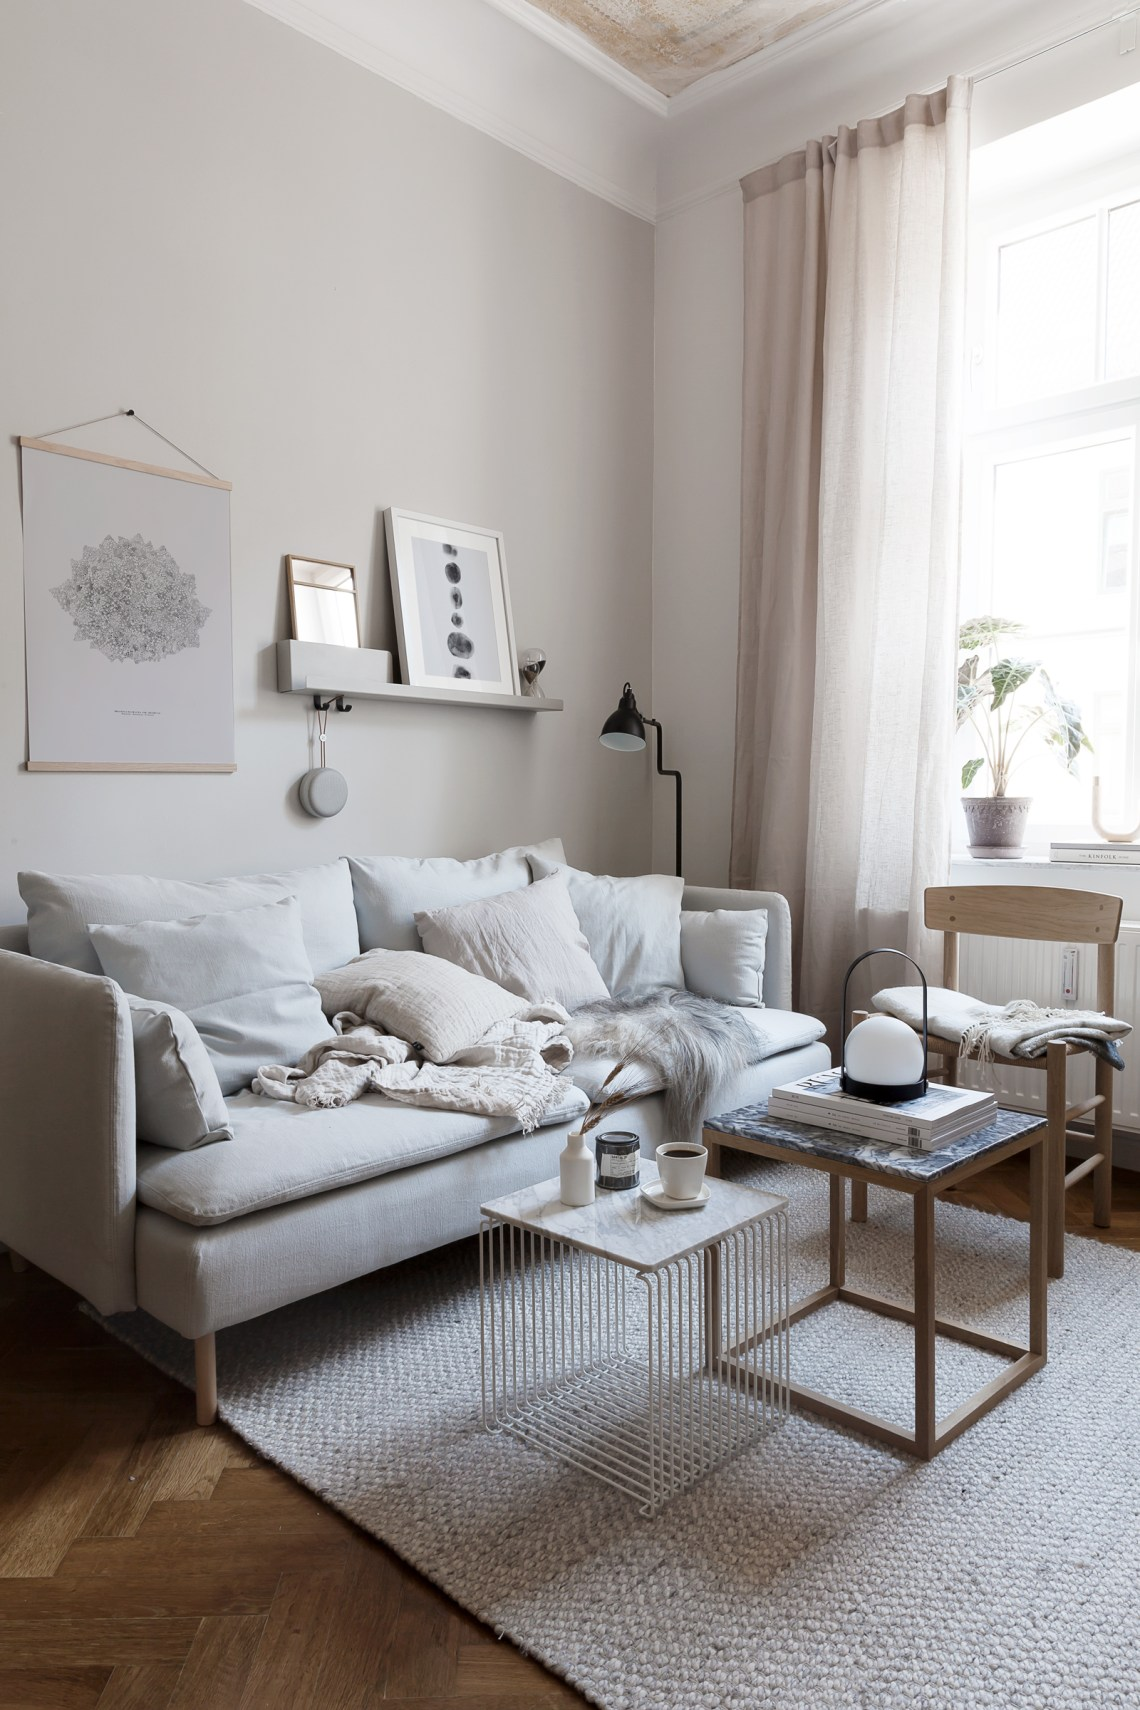 Living room transformation with Bemz